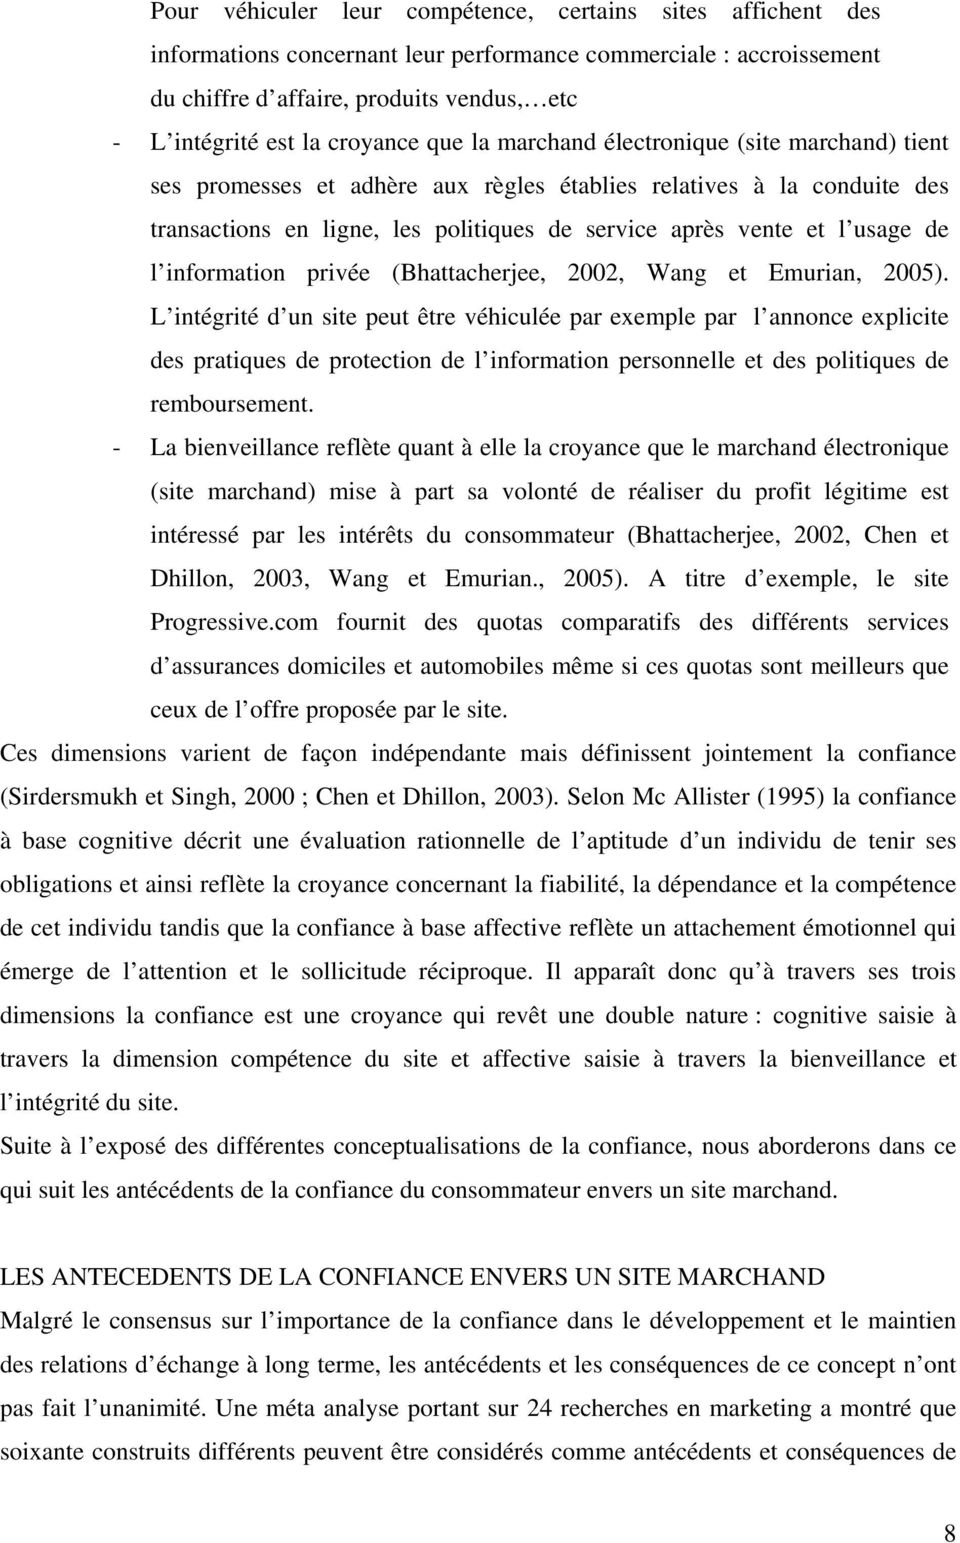 usage de l information privée (Bhattacherjee, 2002, Wang et Emurian, 2005).